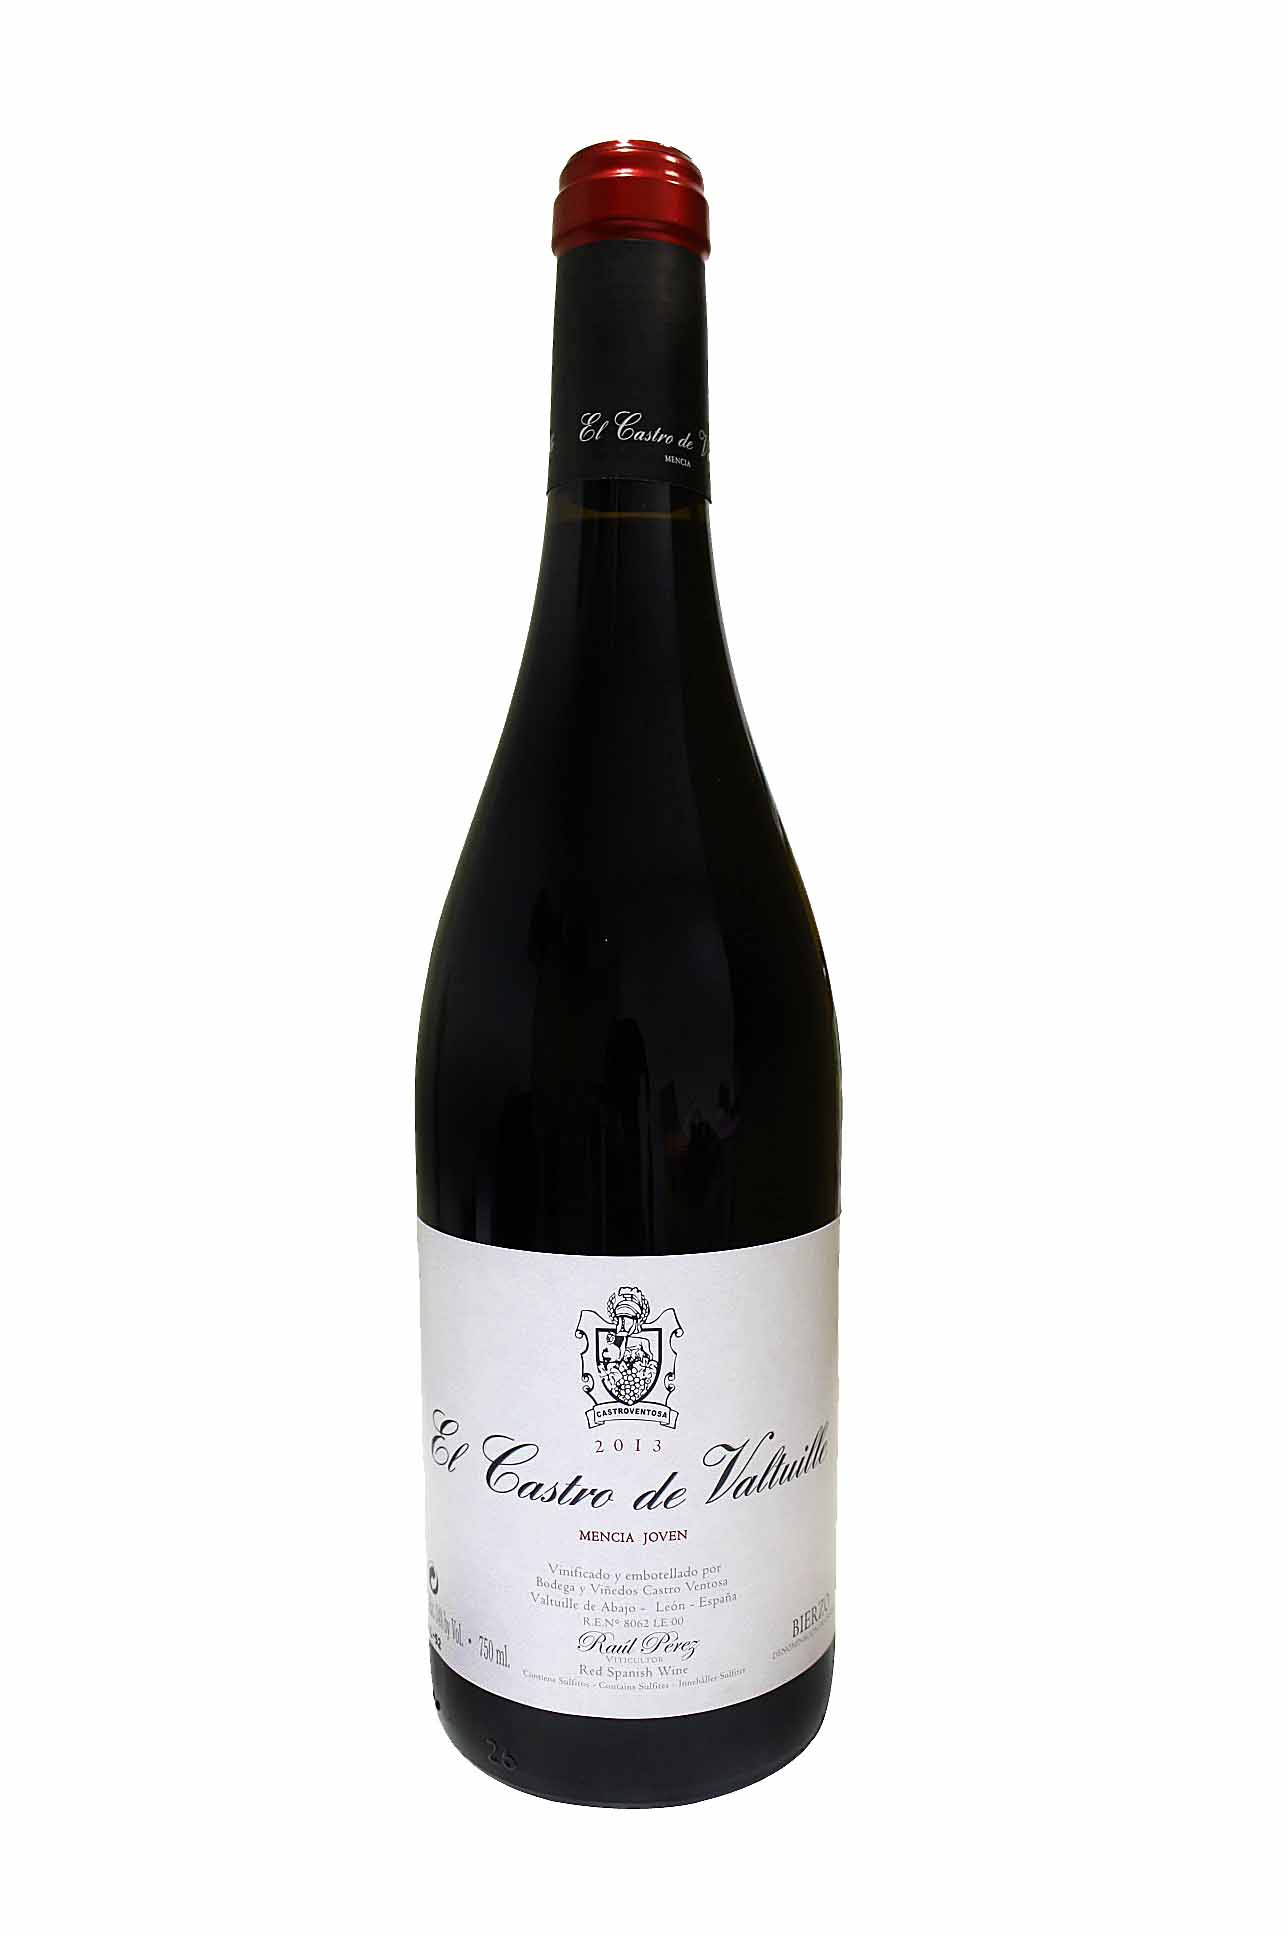 El Castro de Valtuille red wine